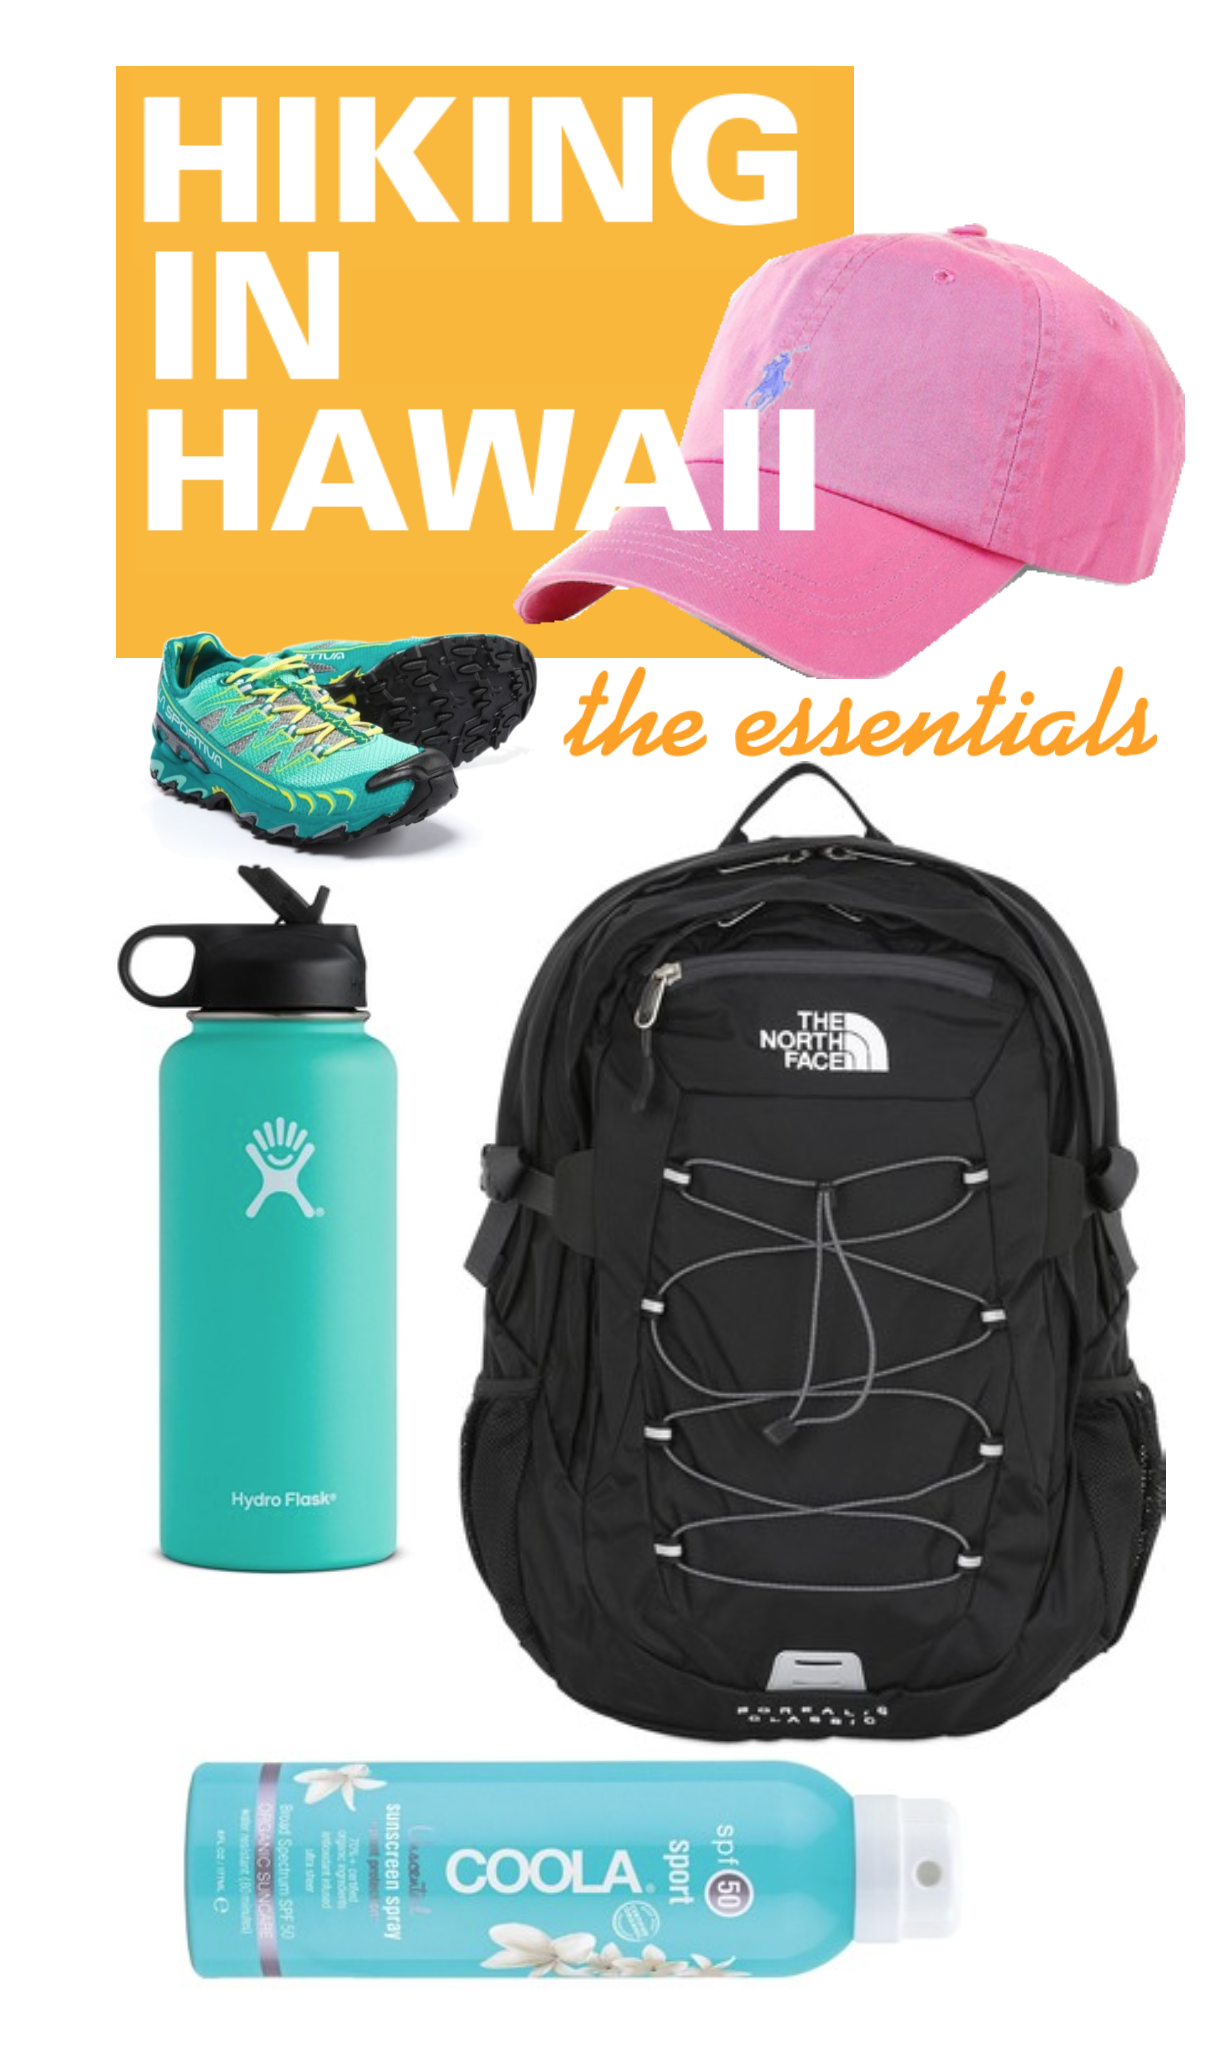 Best Oahu Hikes - Hikes In Hawaii - Where to Hike in Hawaii - Best Hikes On Oahu - How To Hike In Hawaii - Hawaii Itinerary - Oahu Itinerary - Activities on Oahu - Free Stuff To Do On Oahu - Free Stuff To Do Hawaii - What To Pack For Hiking In Hawaii - Communikait by Kait Hanson